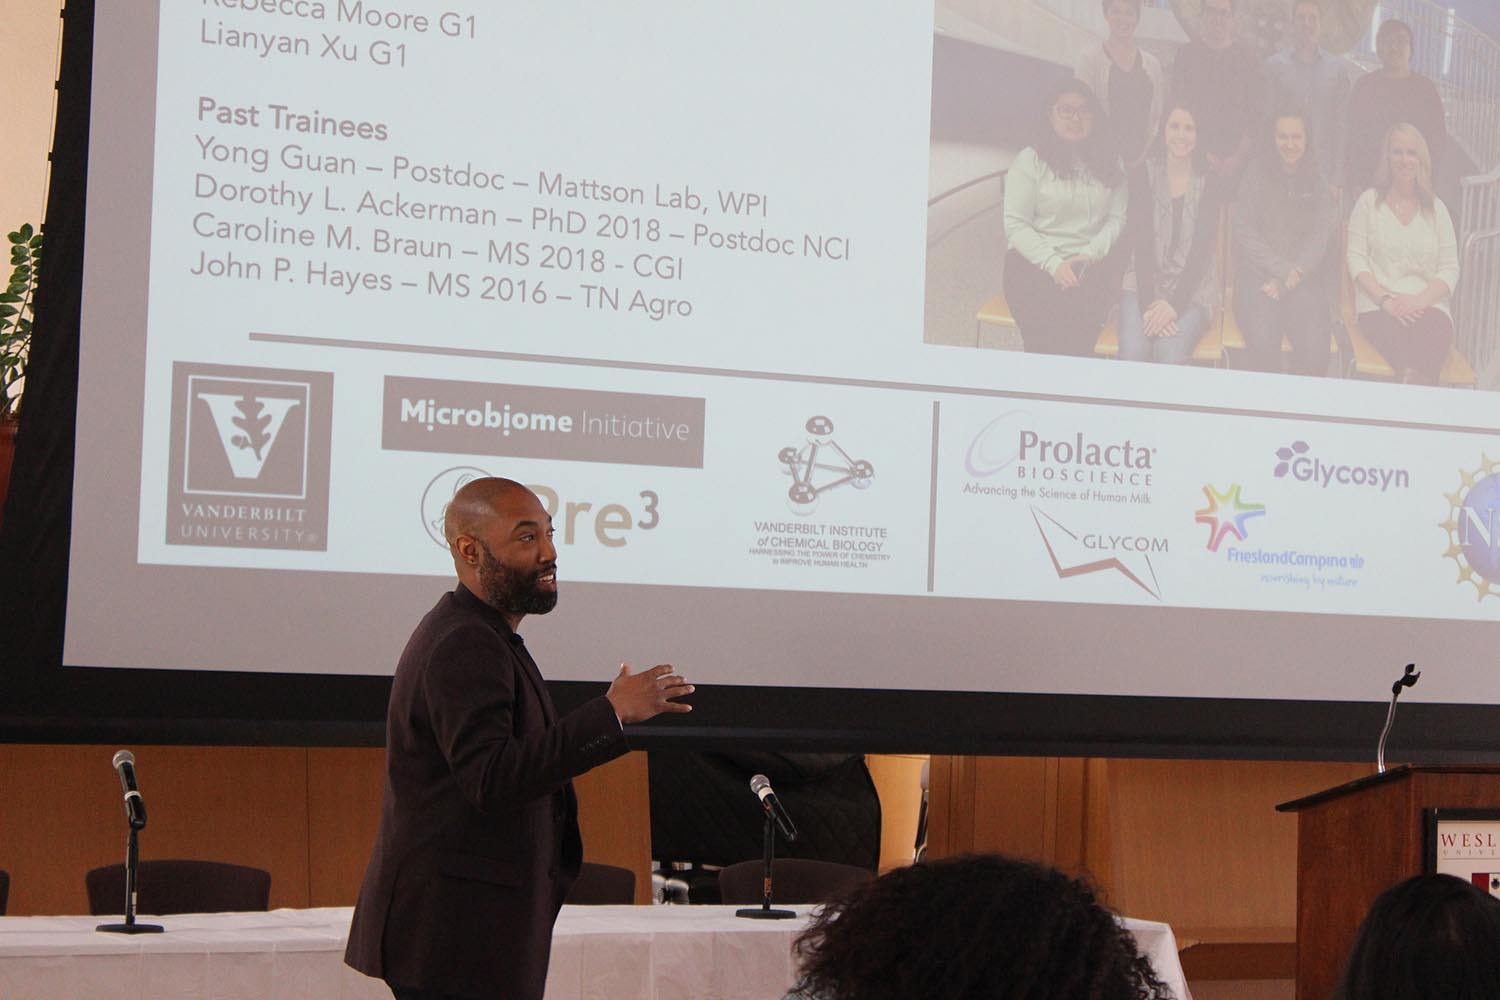 The conference included a keynote speaker, a workshop on Research Basics, and a workshop on Career Development. Discussions focused on what underrepresented and marginalized students need to know about research and the prospects it offers in academia and professional environments.